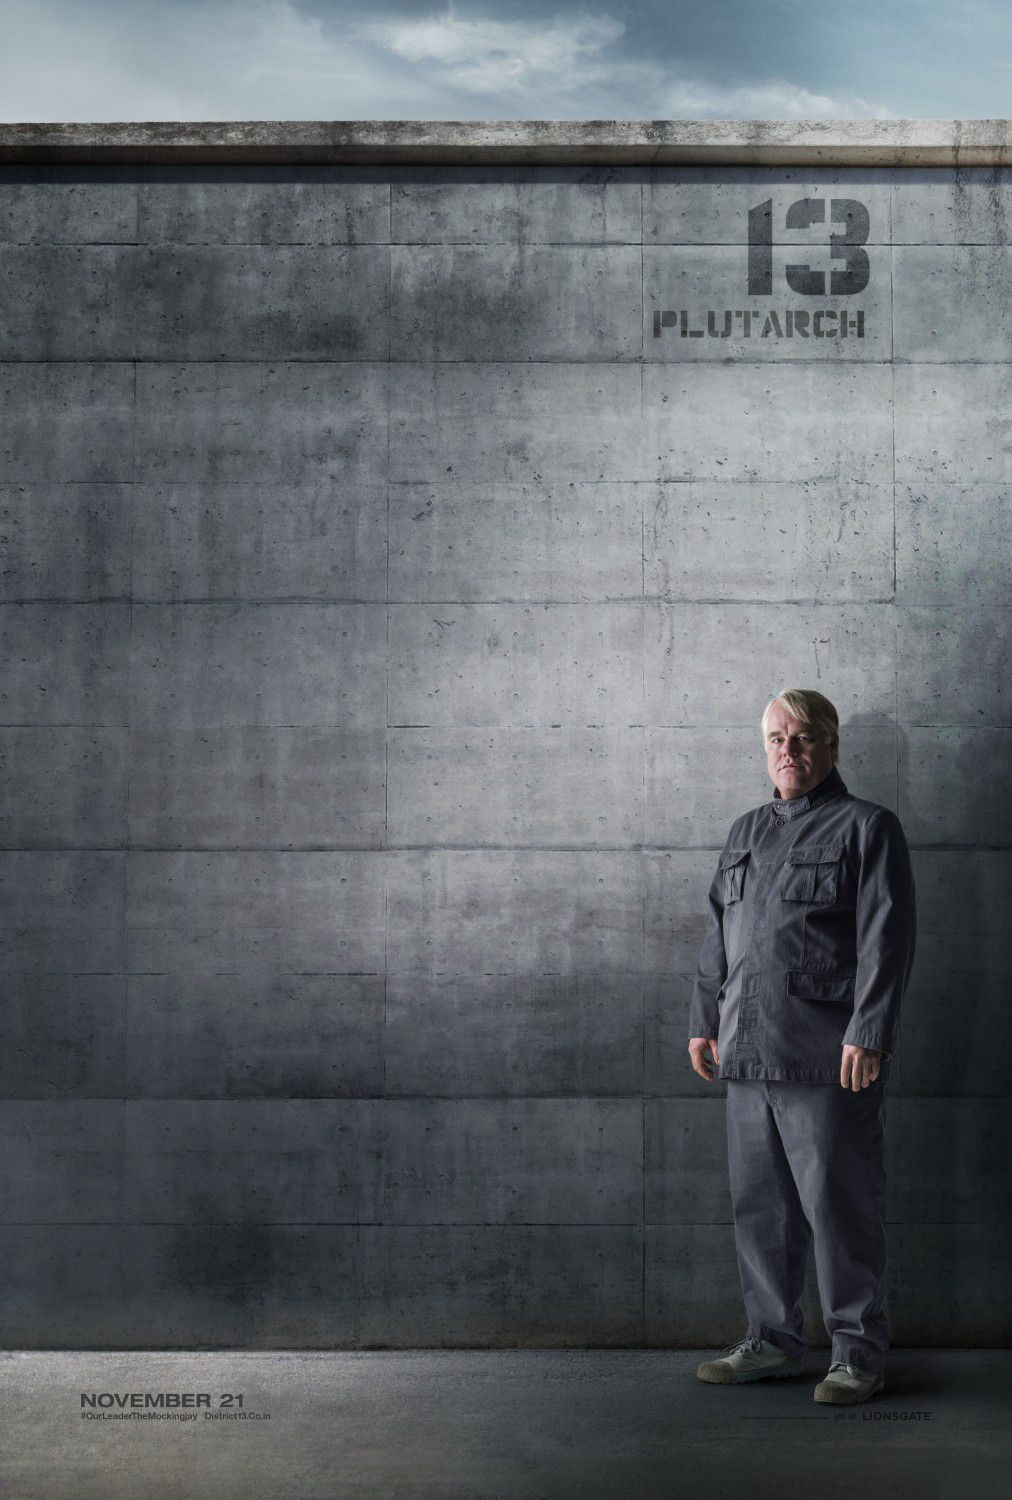 Philip Seymour Hoffman: Plutarch Heavensbee